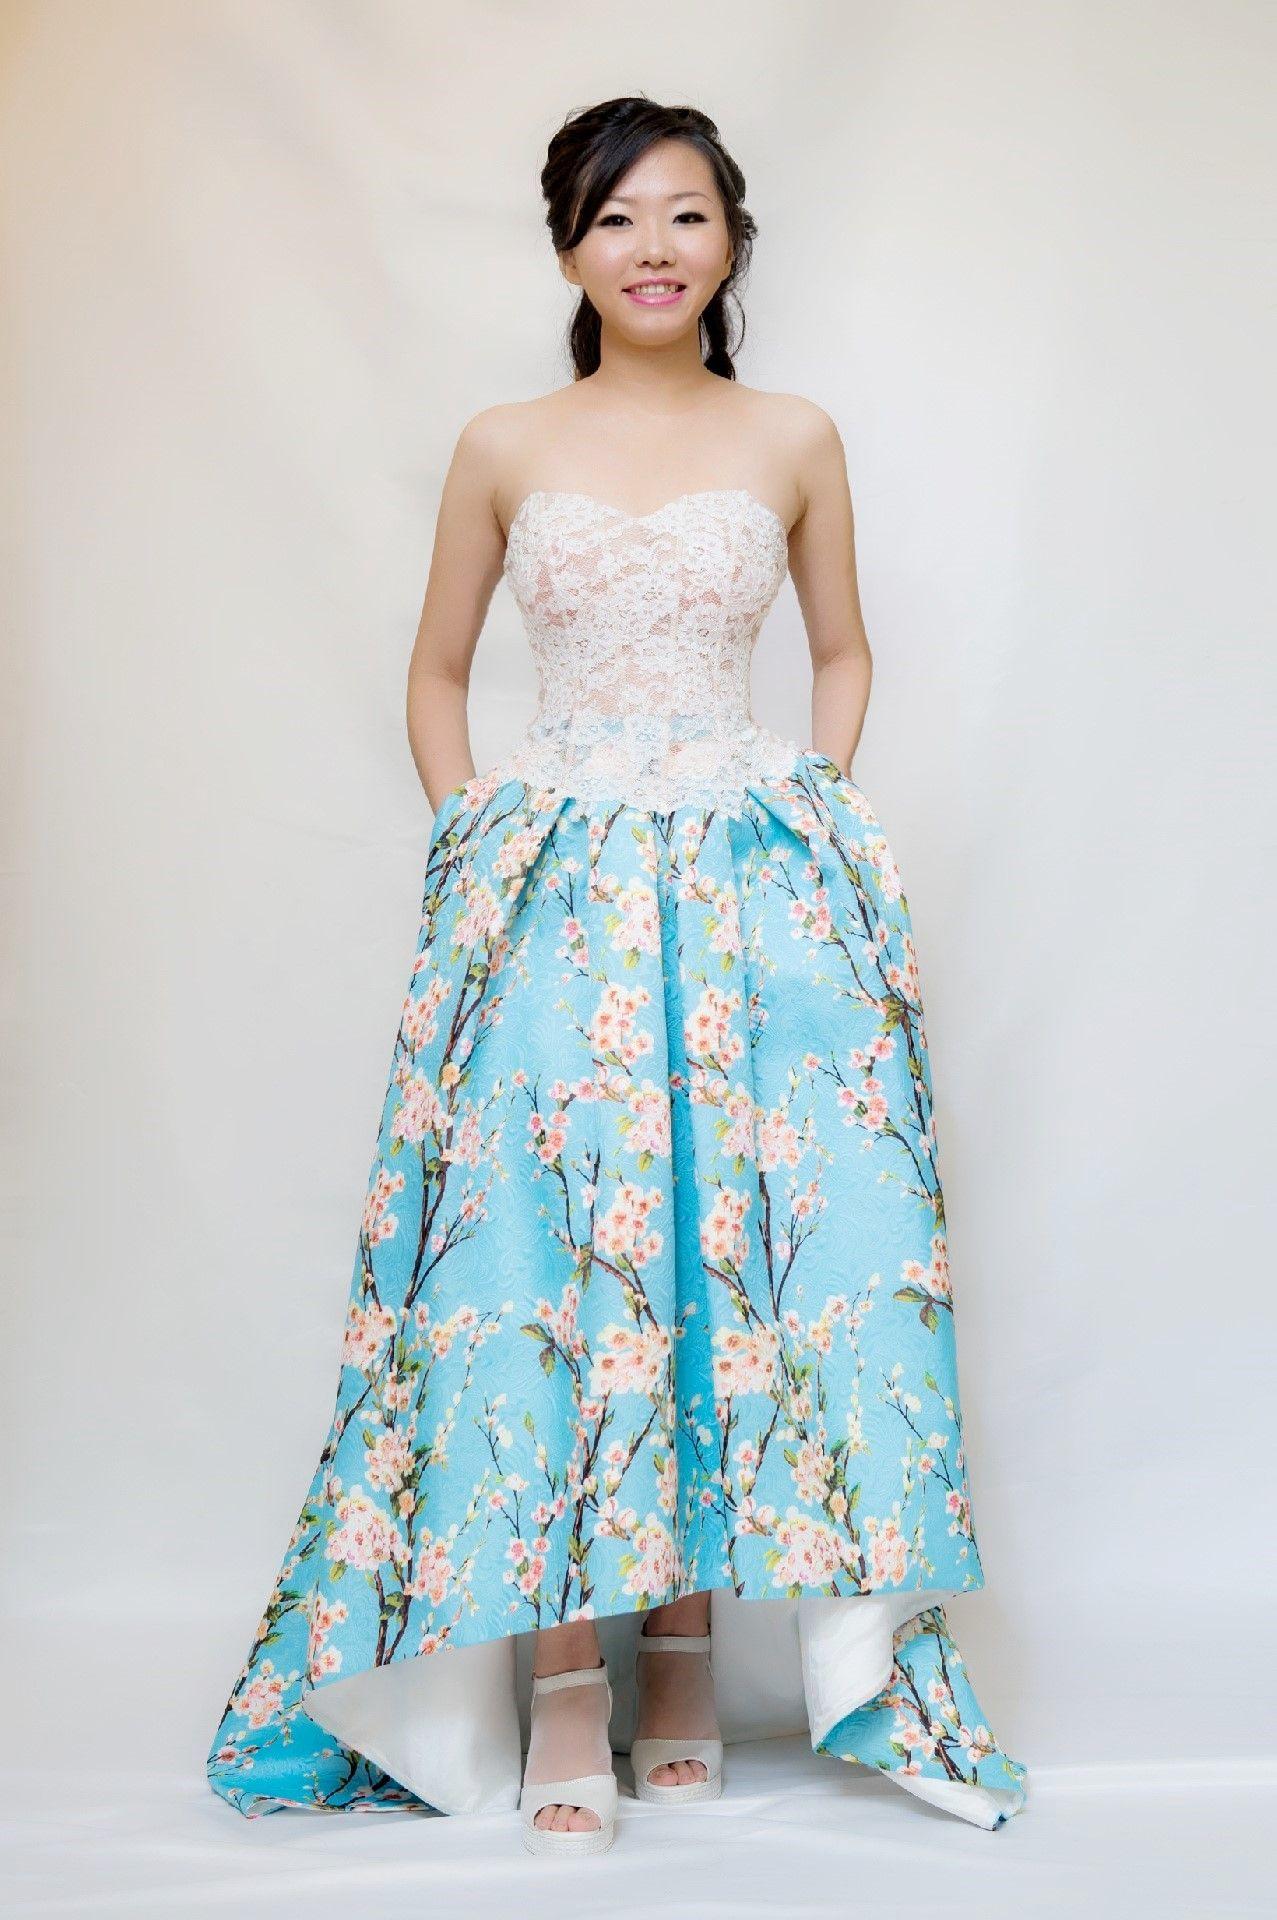 Dear fans, we have new printed bustier evening gown. To view and ...